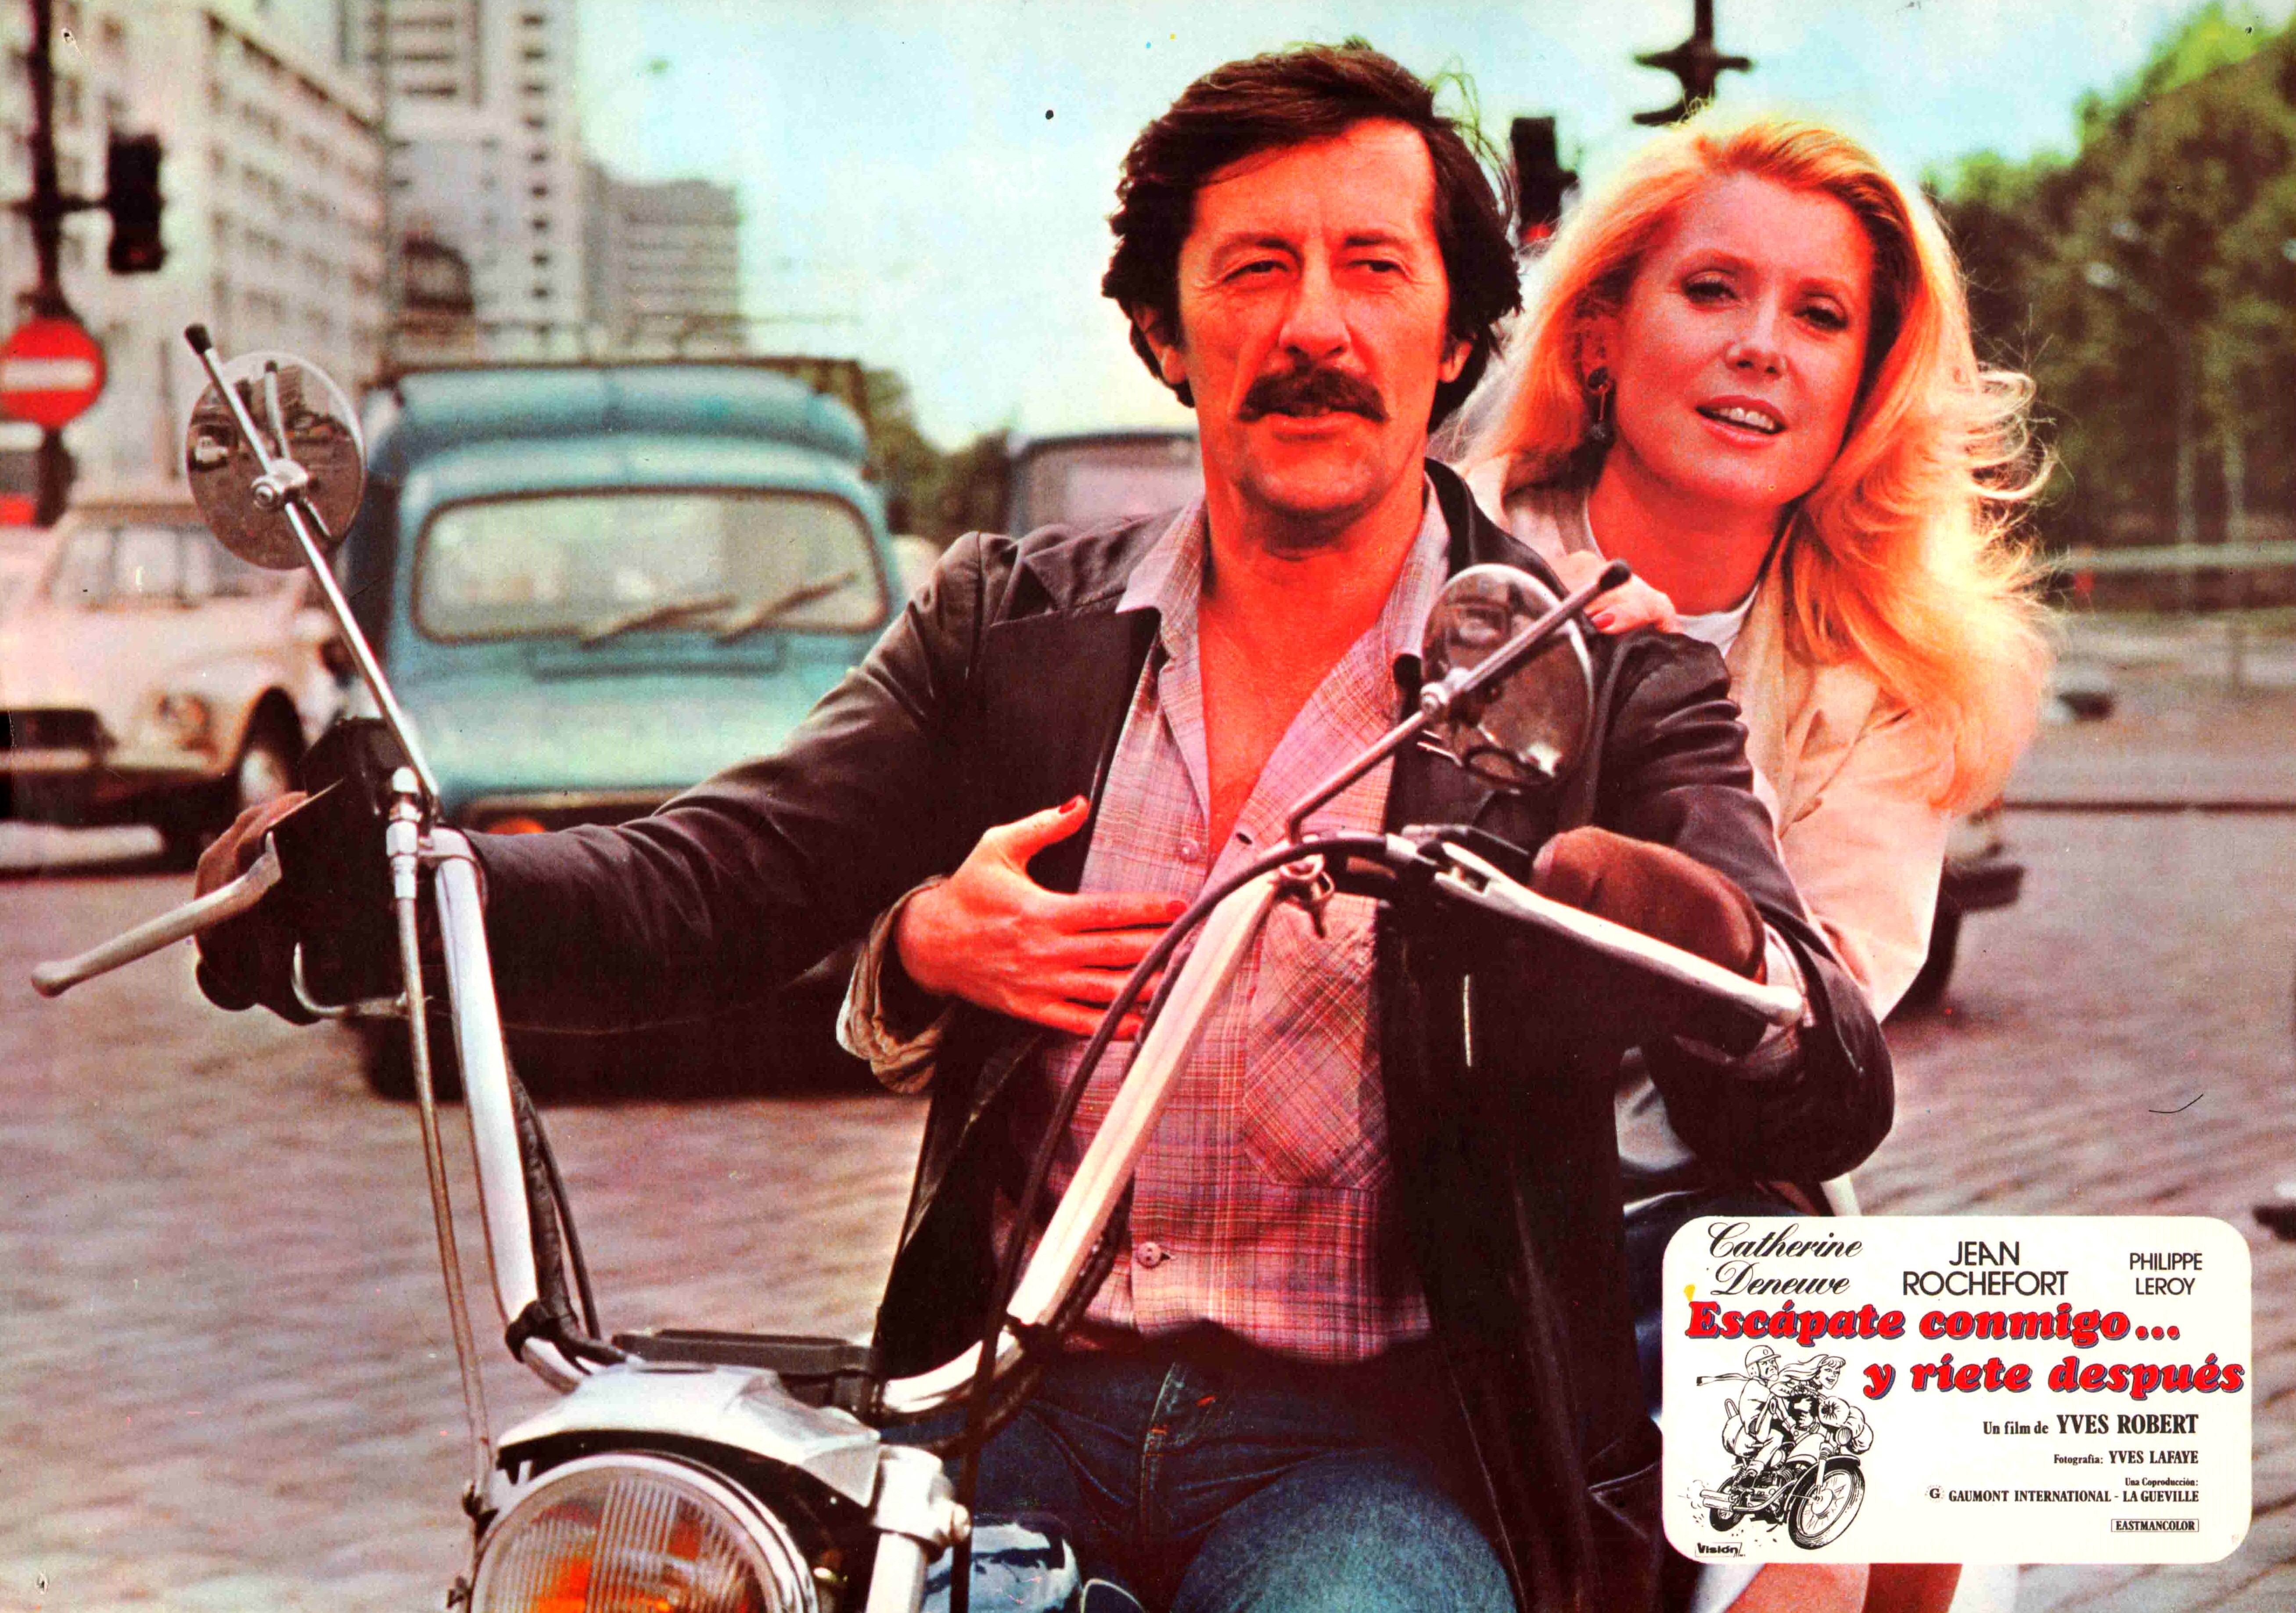 Catherine Deneuve and Jean Rochefort in Courage fuyons (1979)